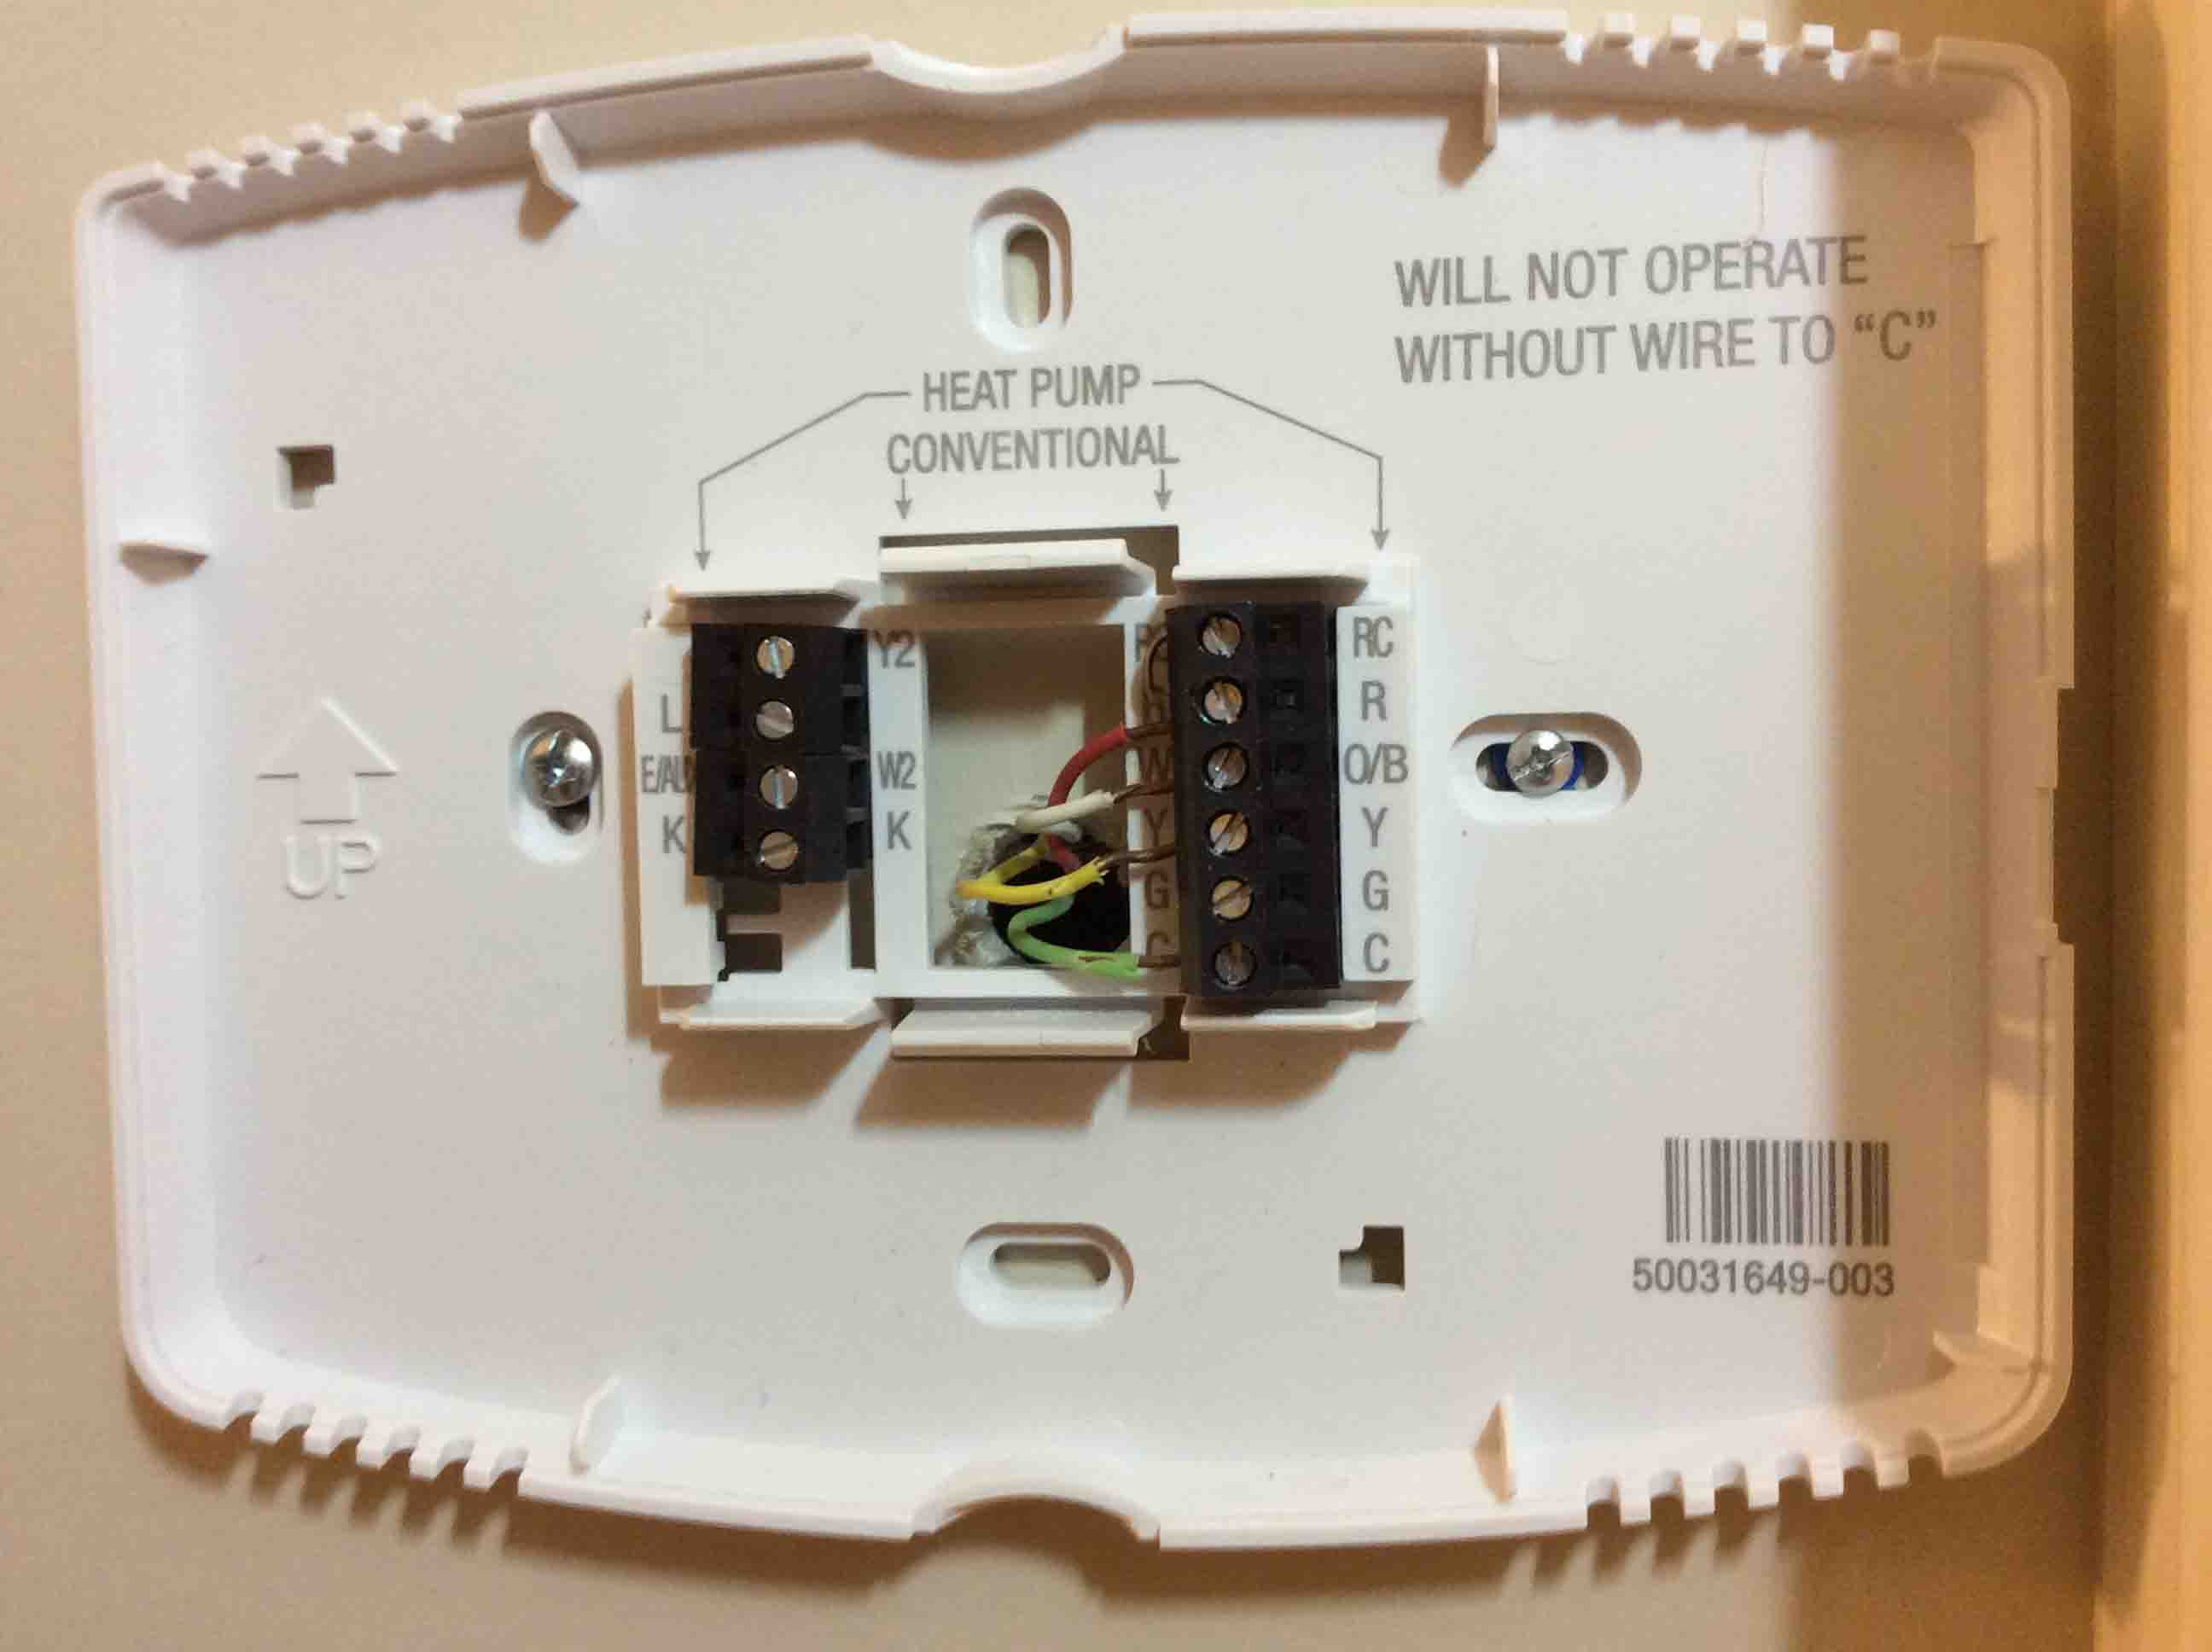 Honeywell Thermostat Wiring Diagram 4 Wire Toms Tek Stop Picture Of The Wall Plate For A